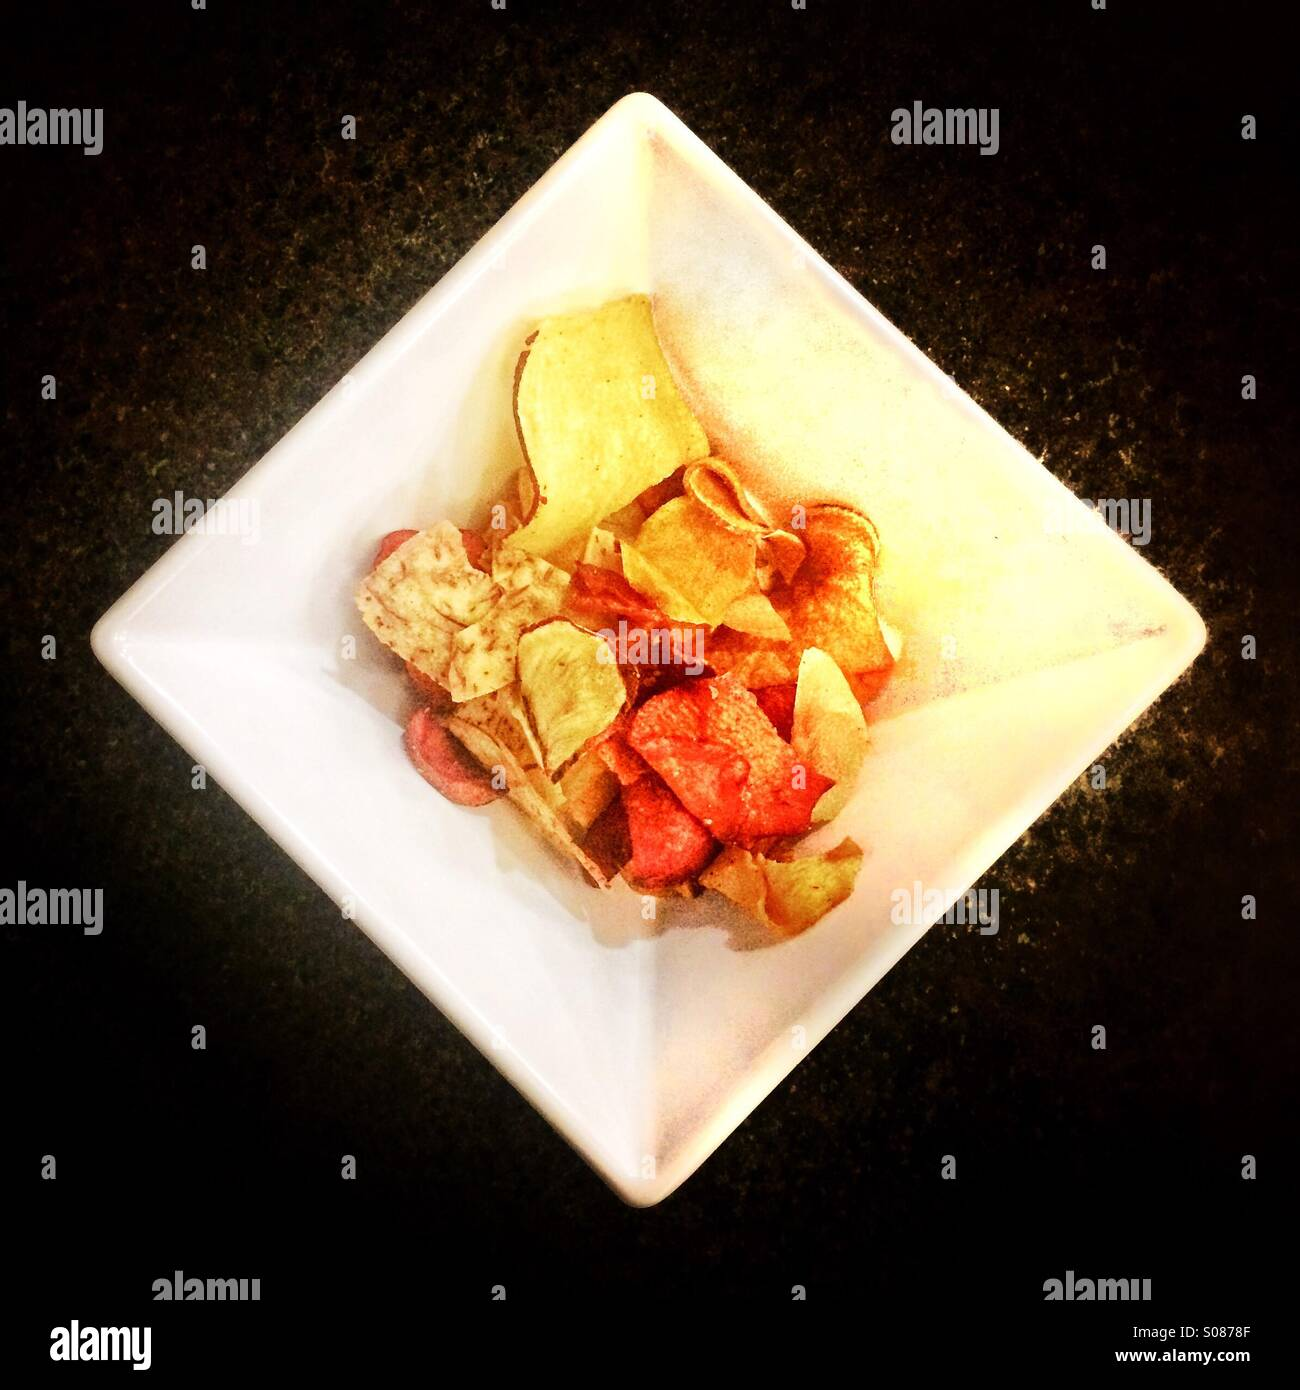 Potato chips in a bowl - Stock Image